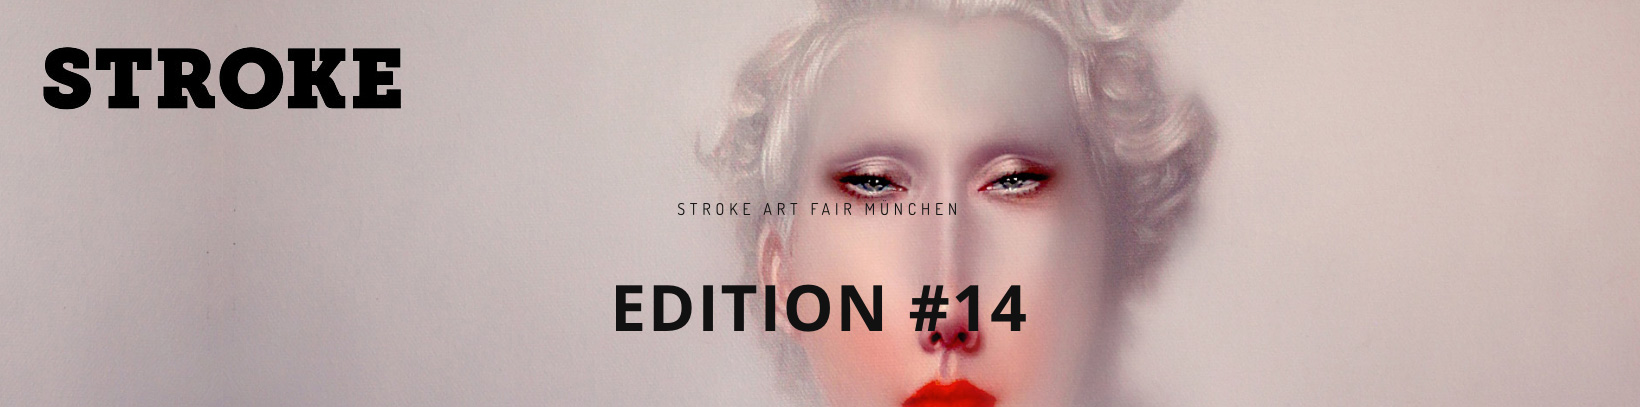 Stroke-art-fair